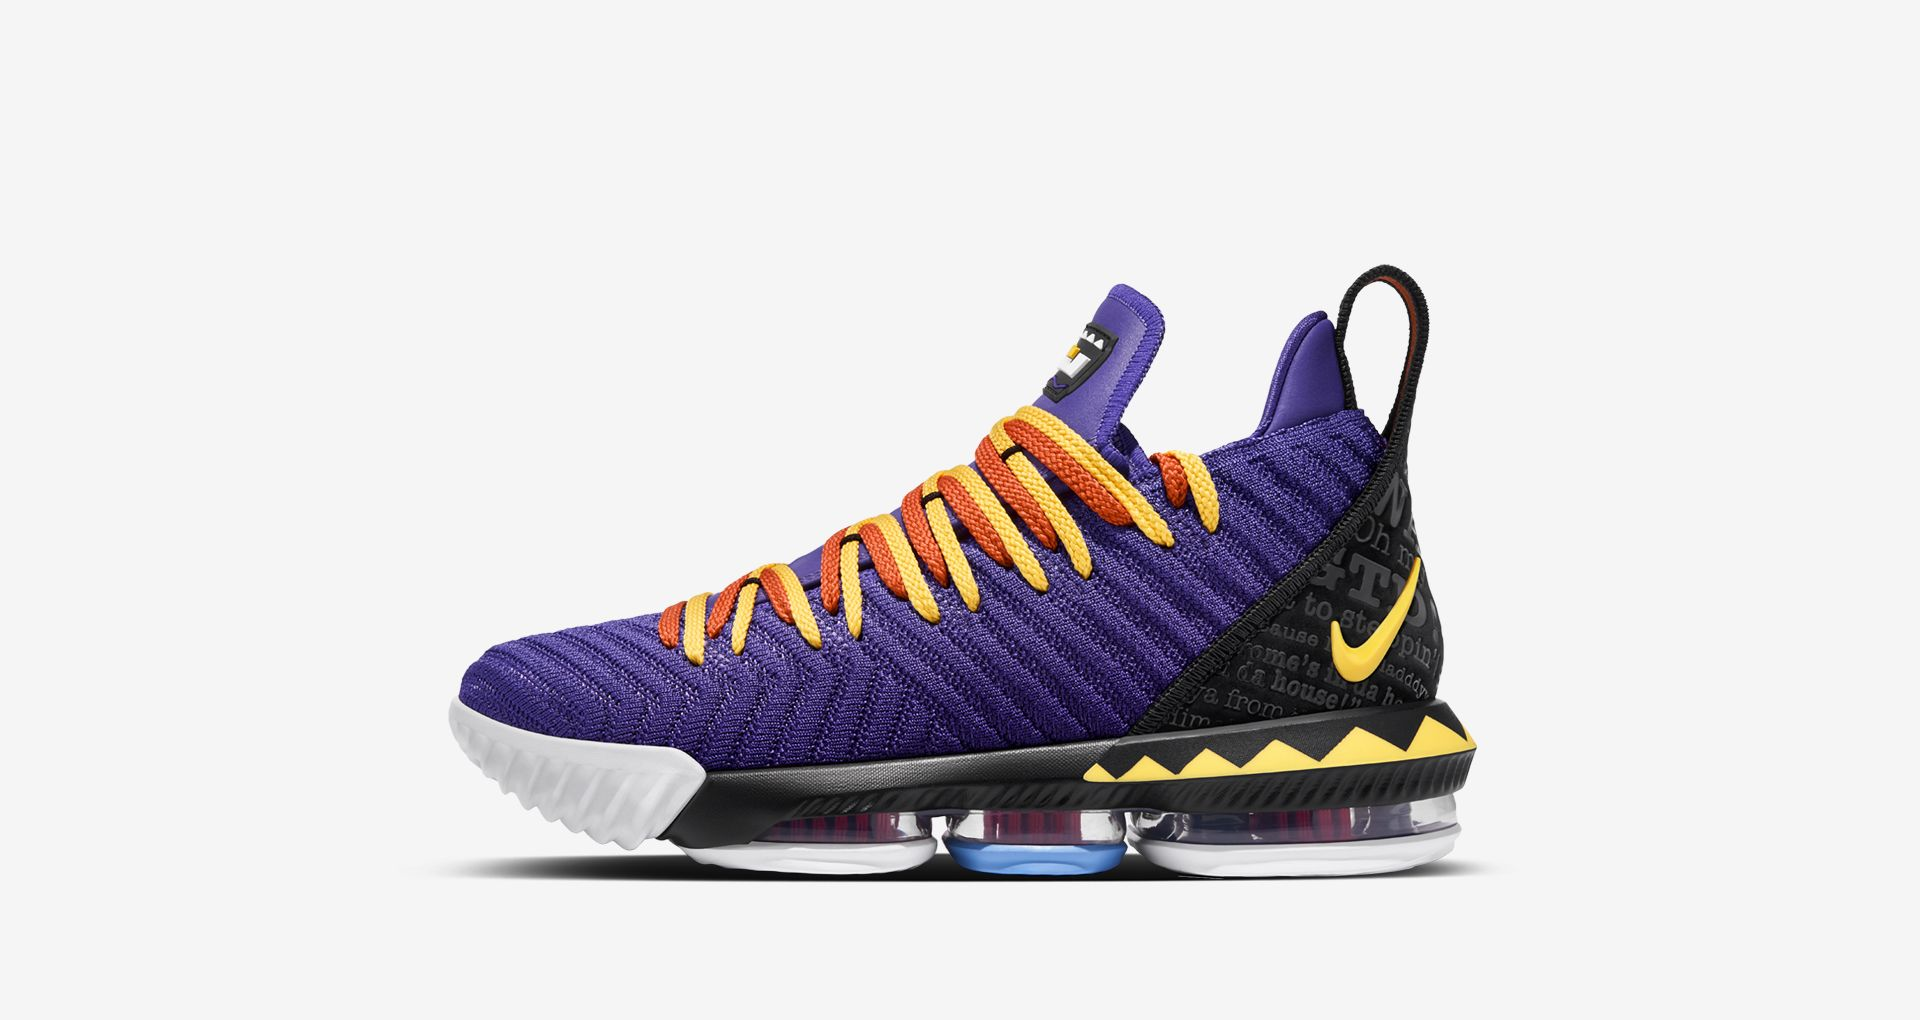 premium selection 6a3c1 519b6 LeBron 16 'Martin' Release Date. Nike+ SNKRS